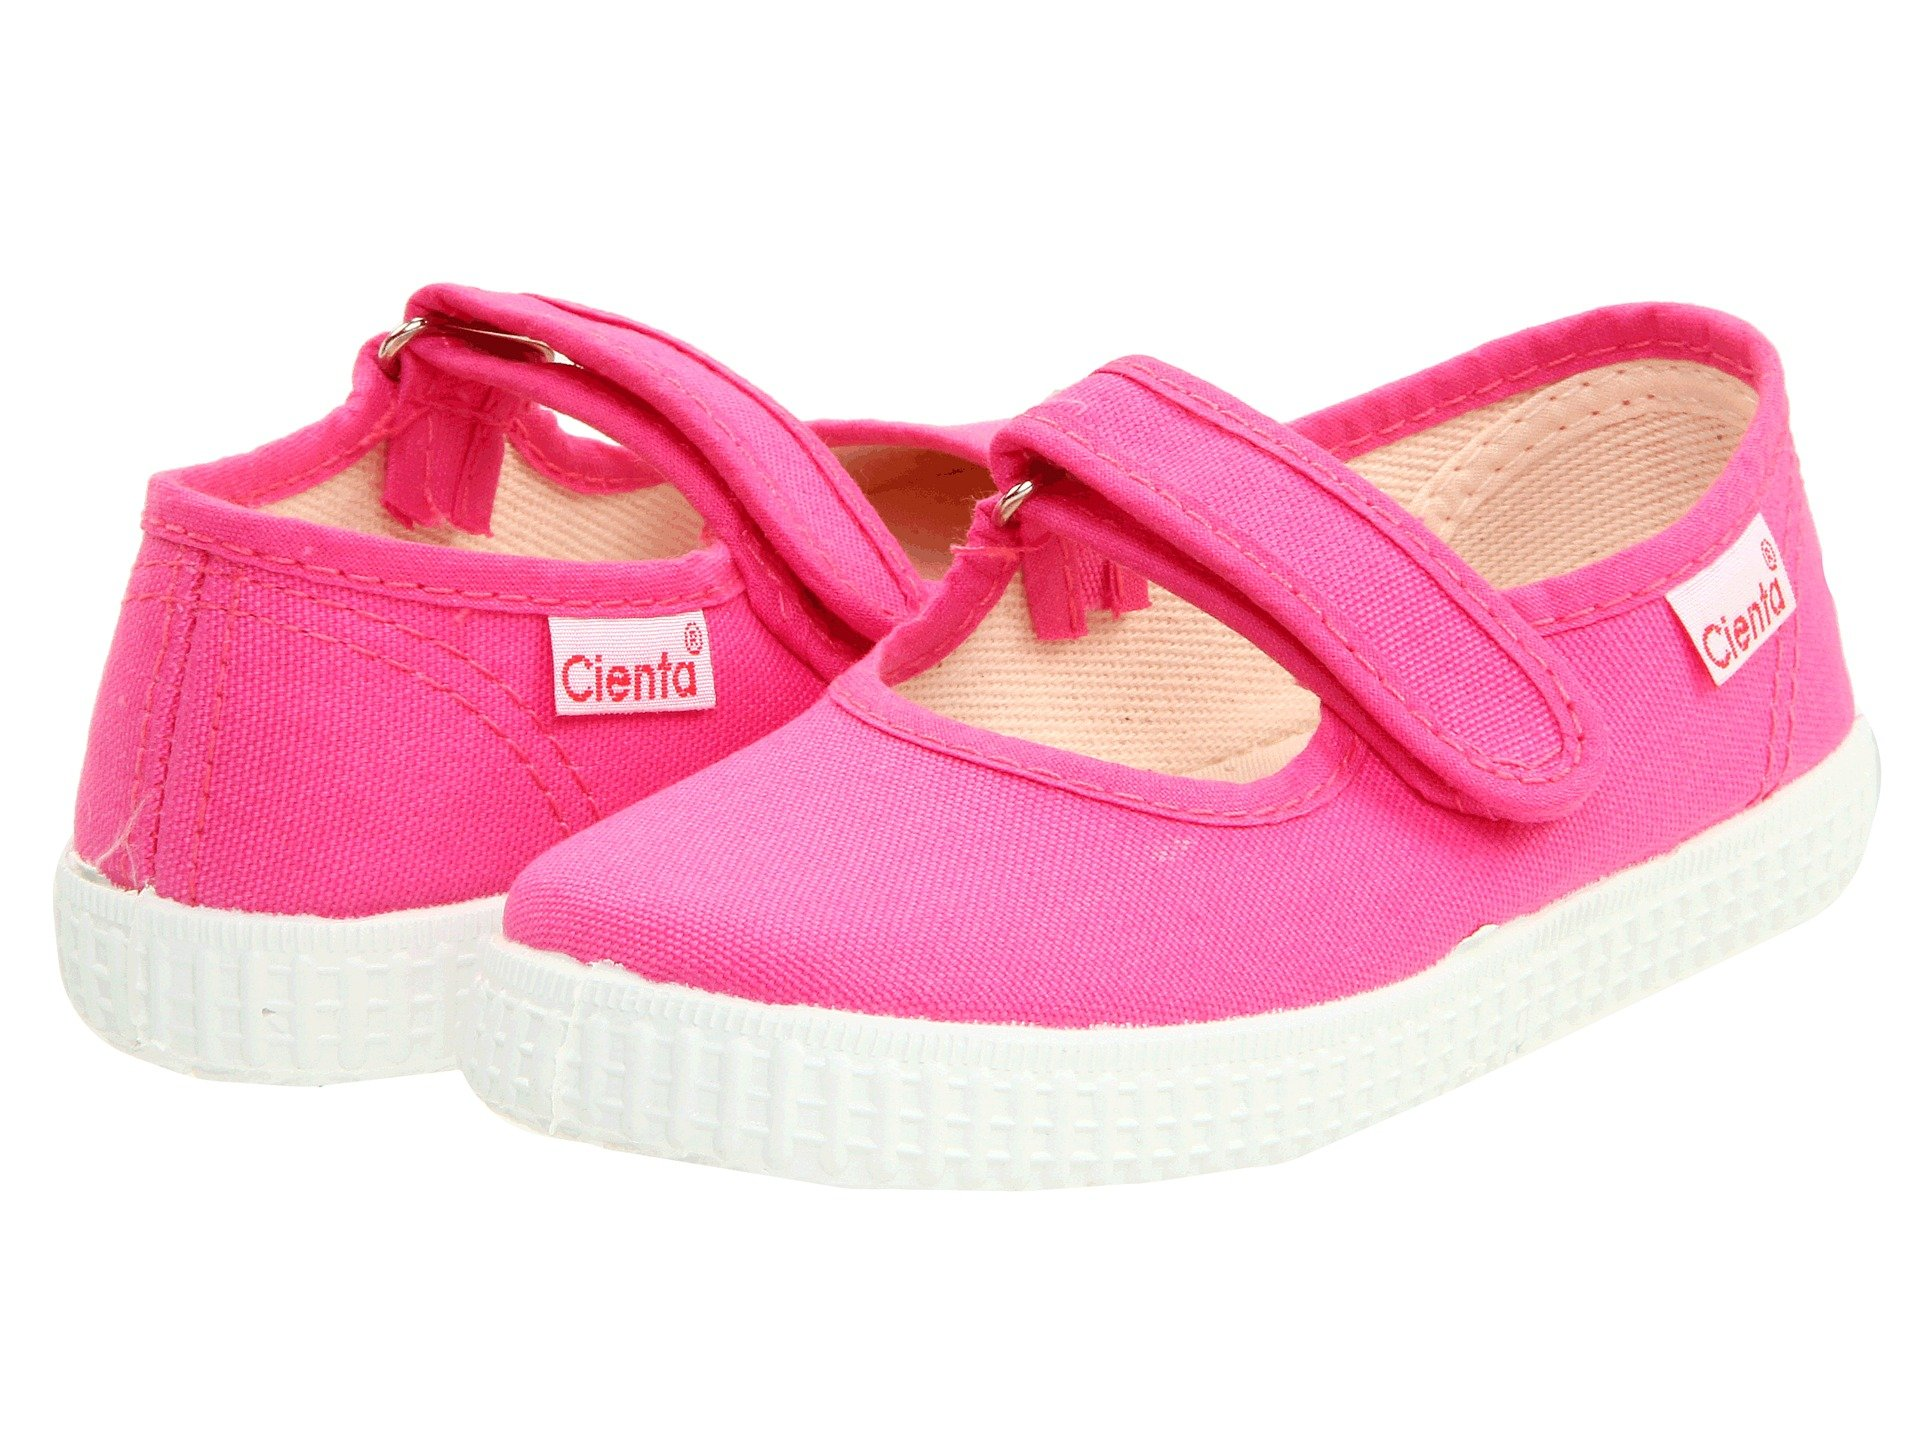 Sneakers \u0026 Athletic Shoes, Girls, 2.5 Infant | Shipped Free at Zappos